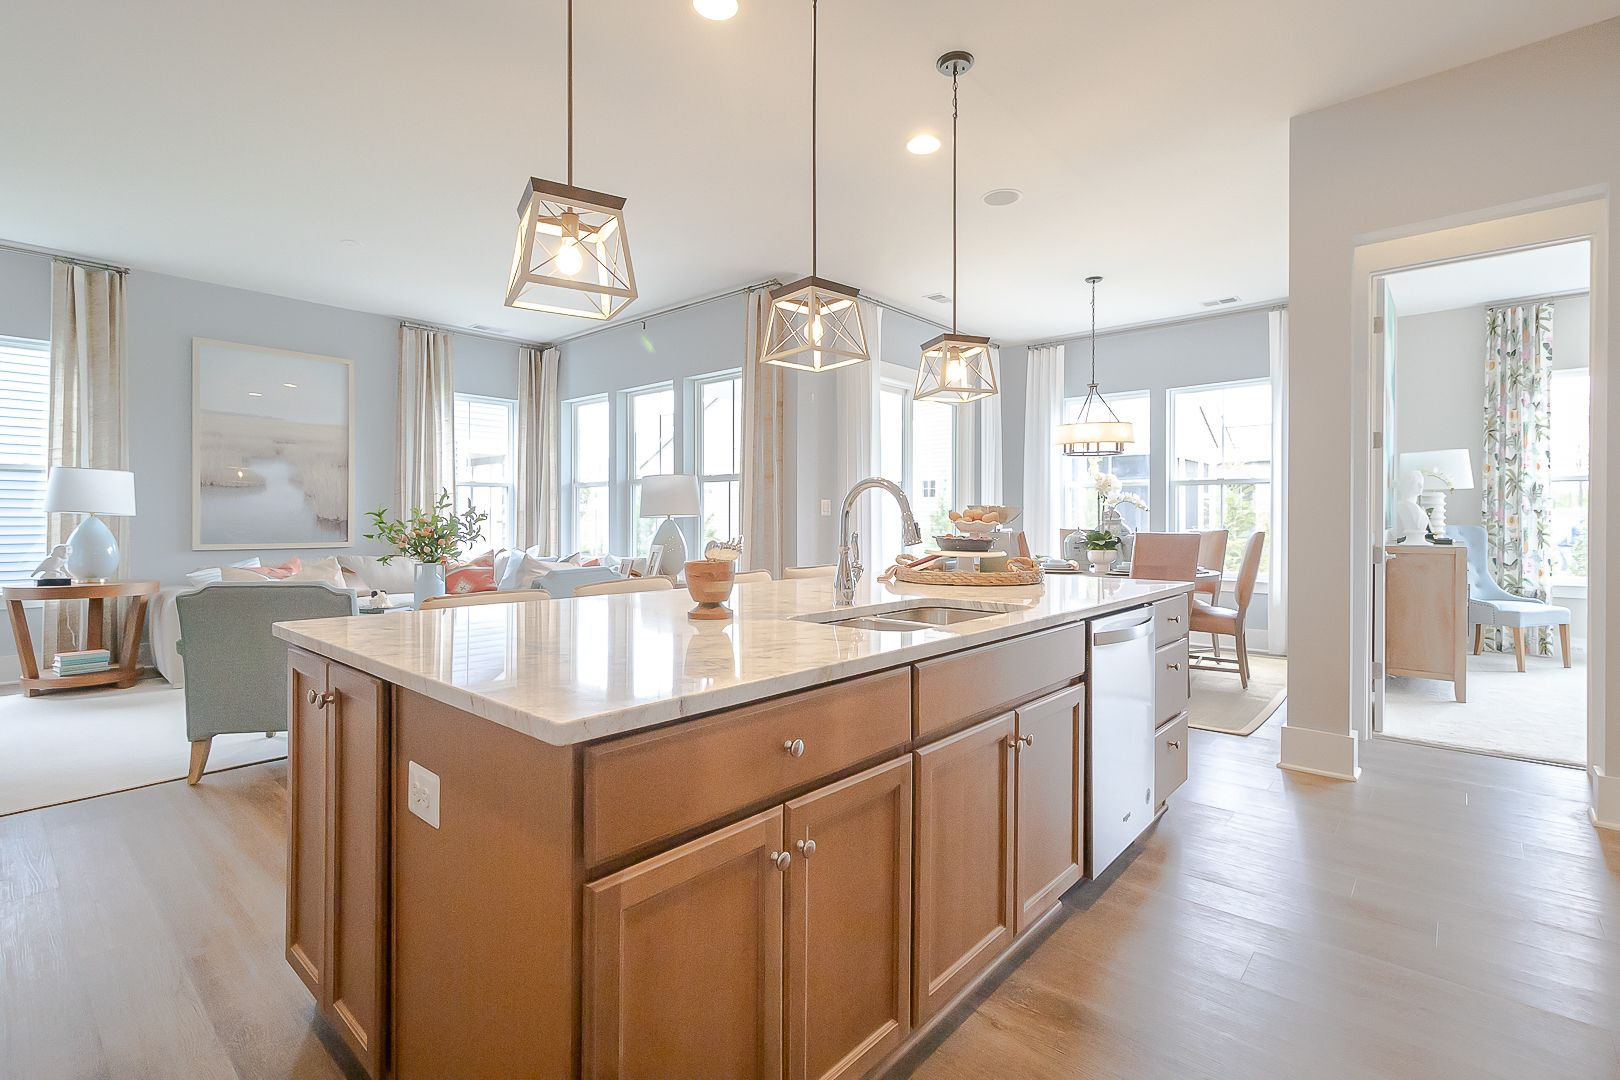 Kitchen featured in The Curator By Elevate Homes in York, PA